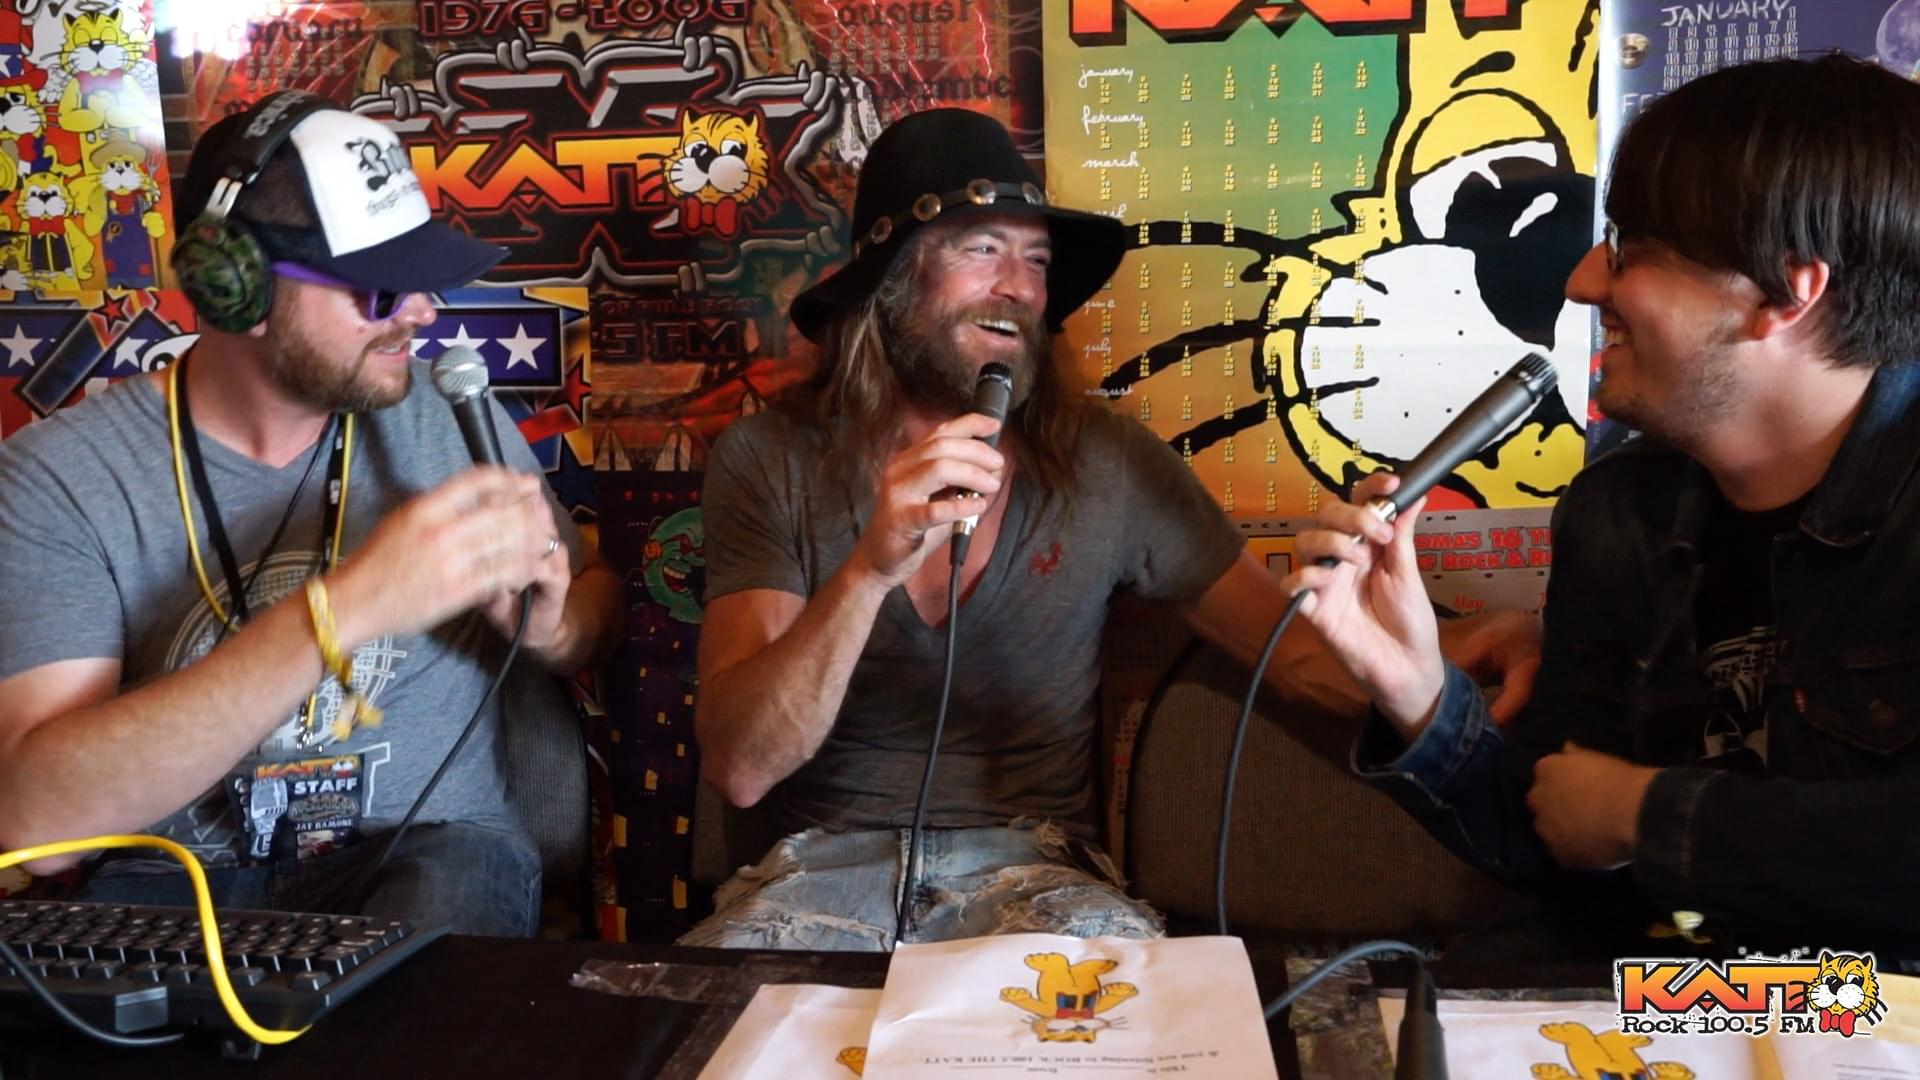 VIDEO: Shaman'sHarvest – KATT Interview | Rocklahoma 2016